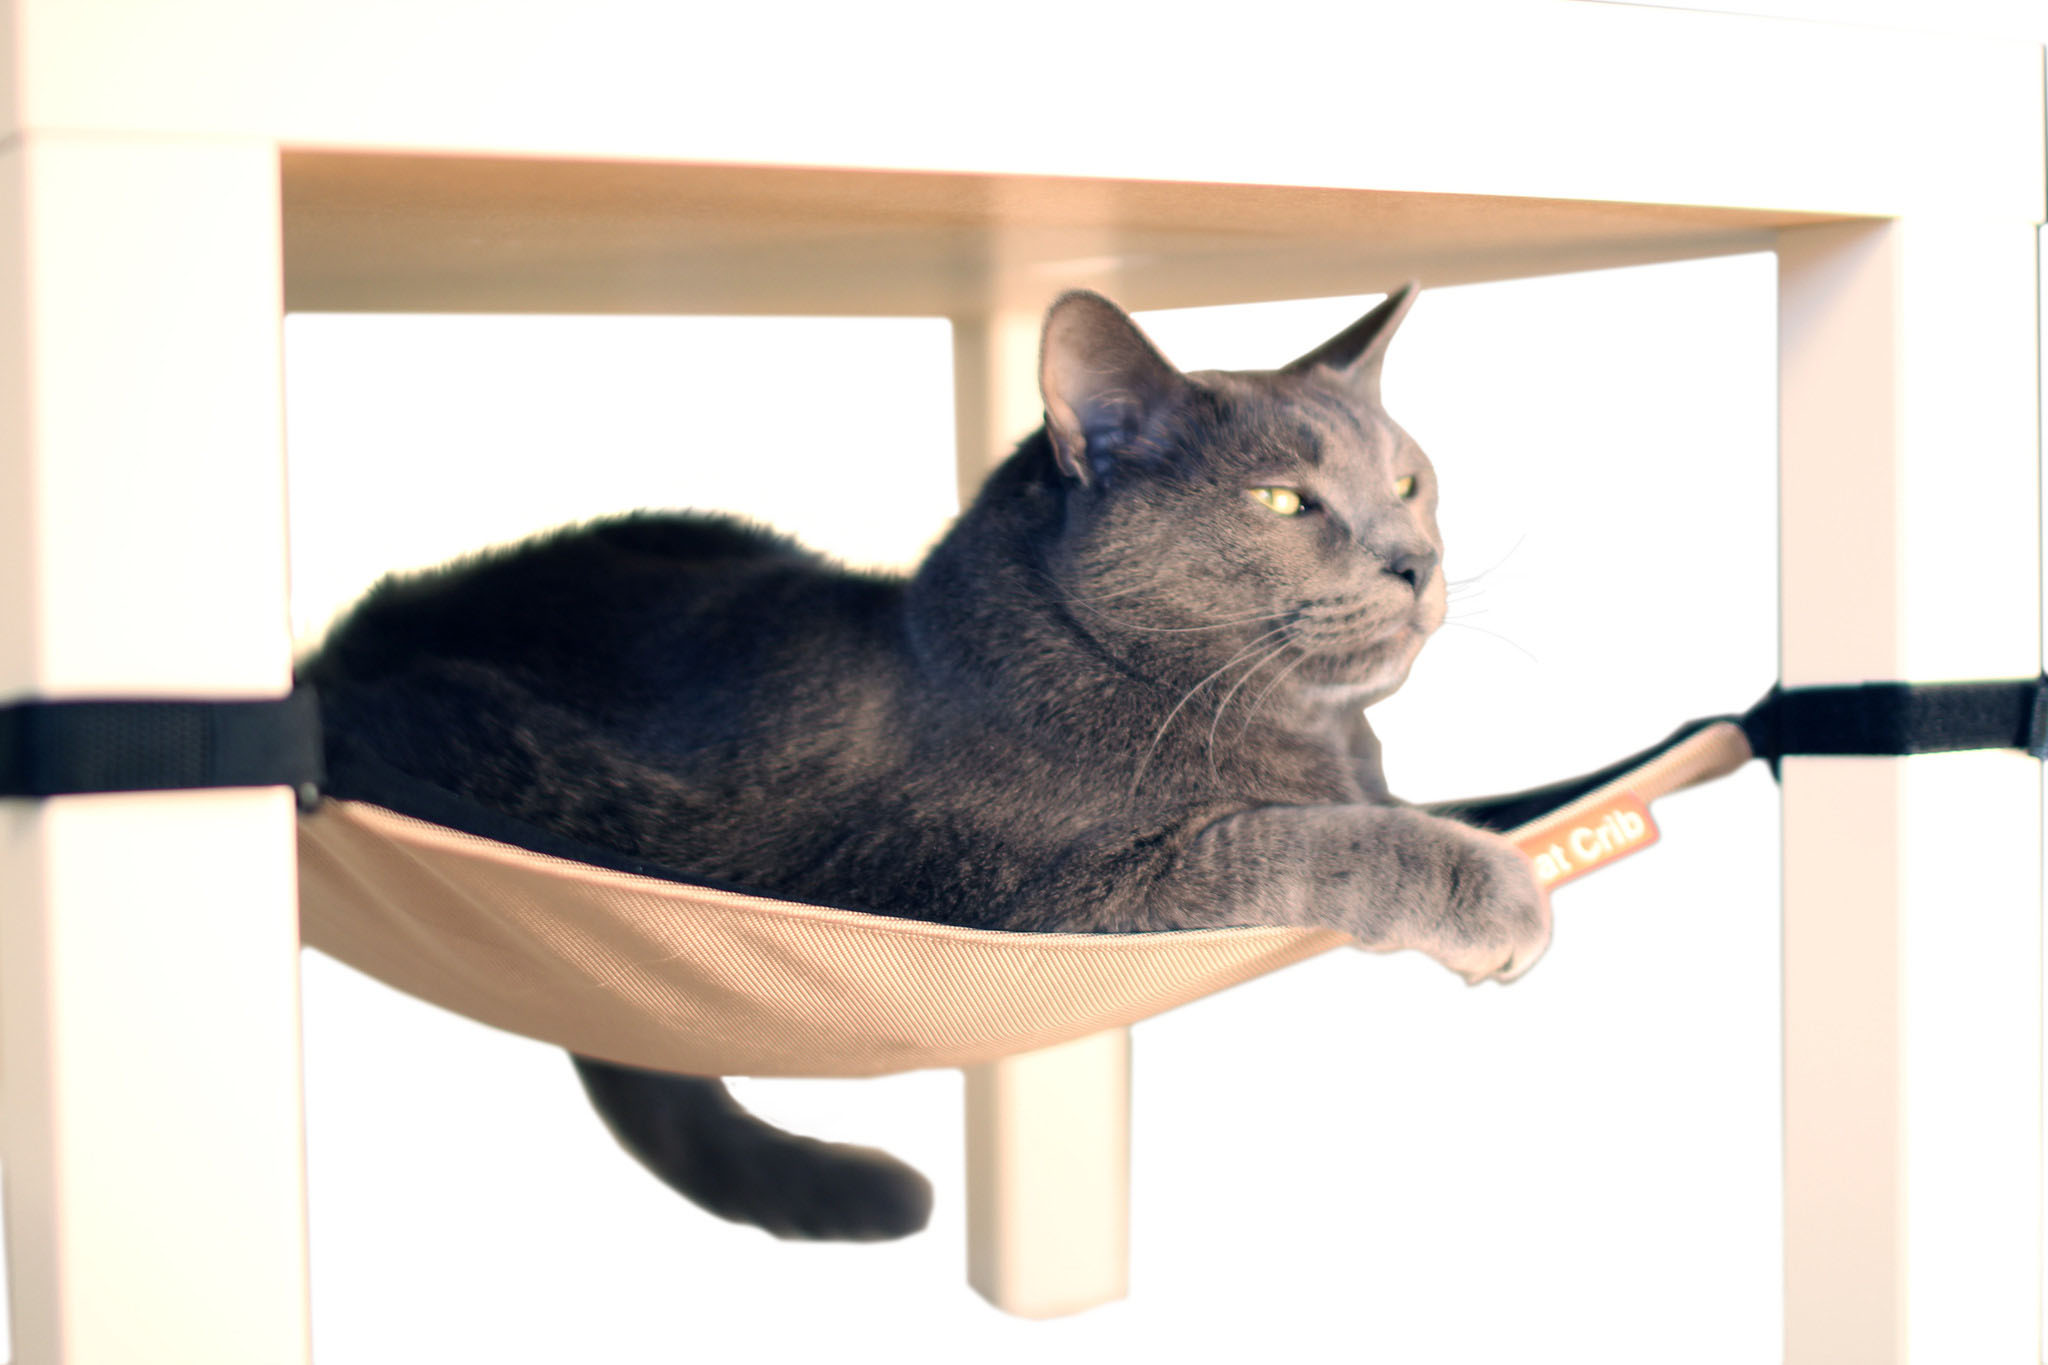 Medium image of cat crib hammock